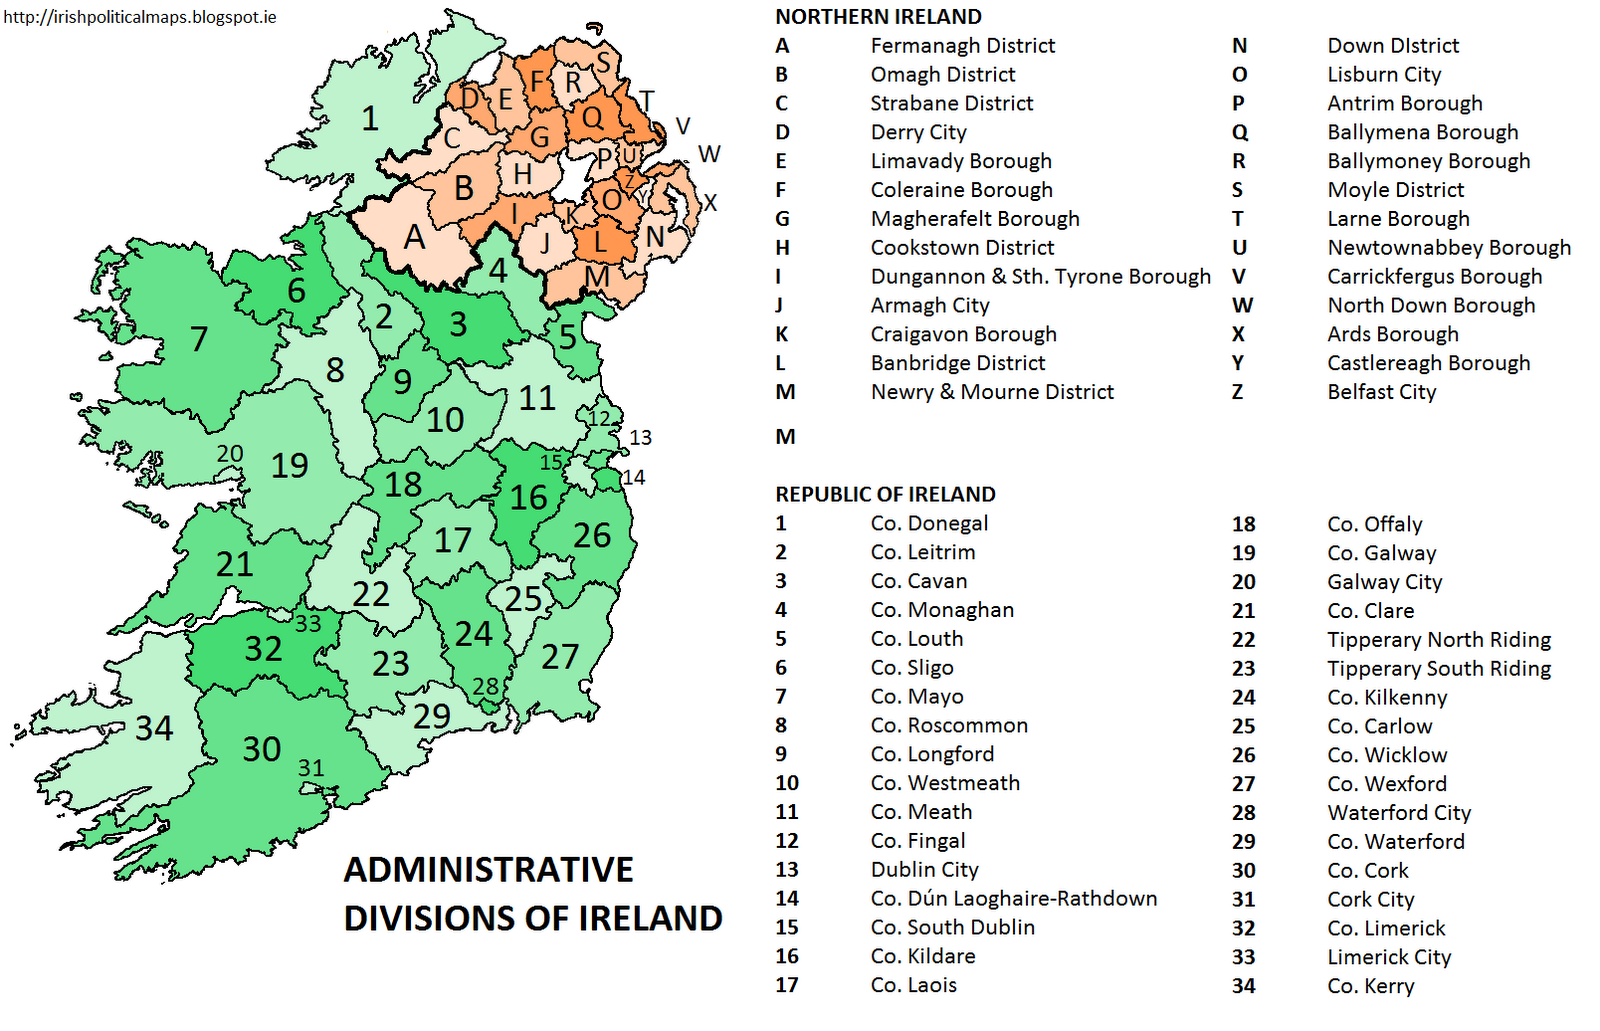 Irish Political Maps: The Counties of Ireland